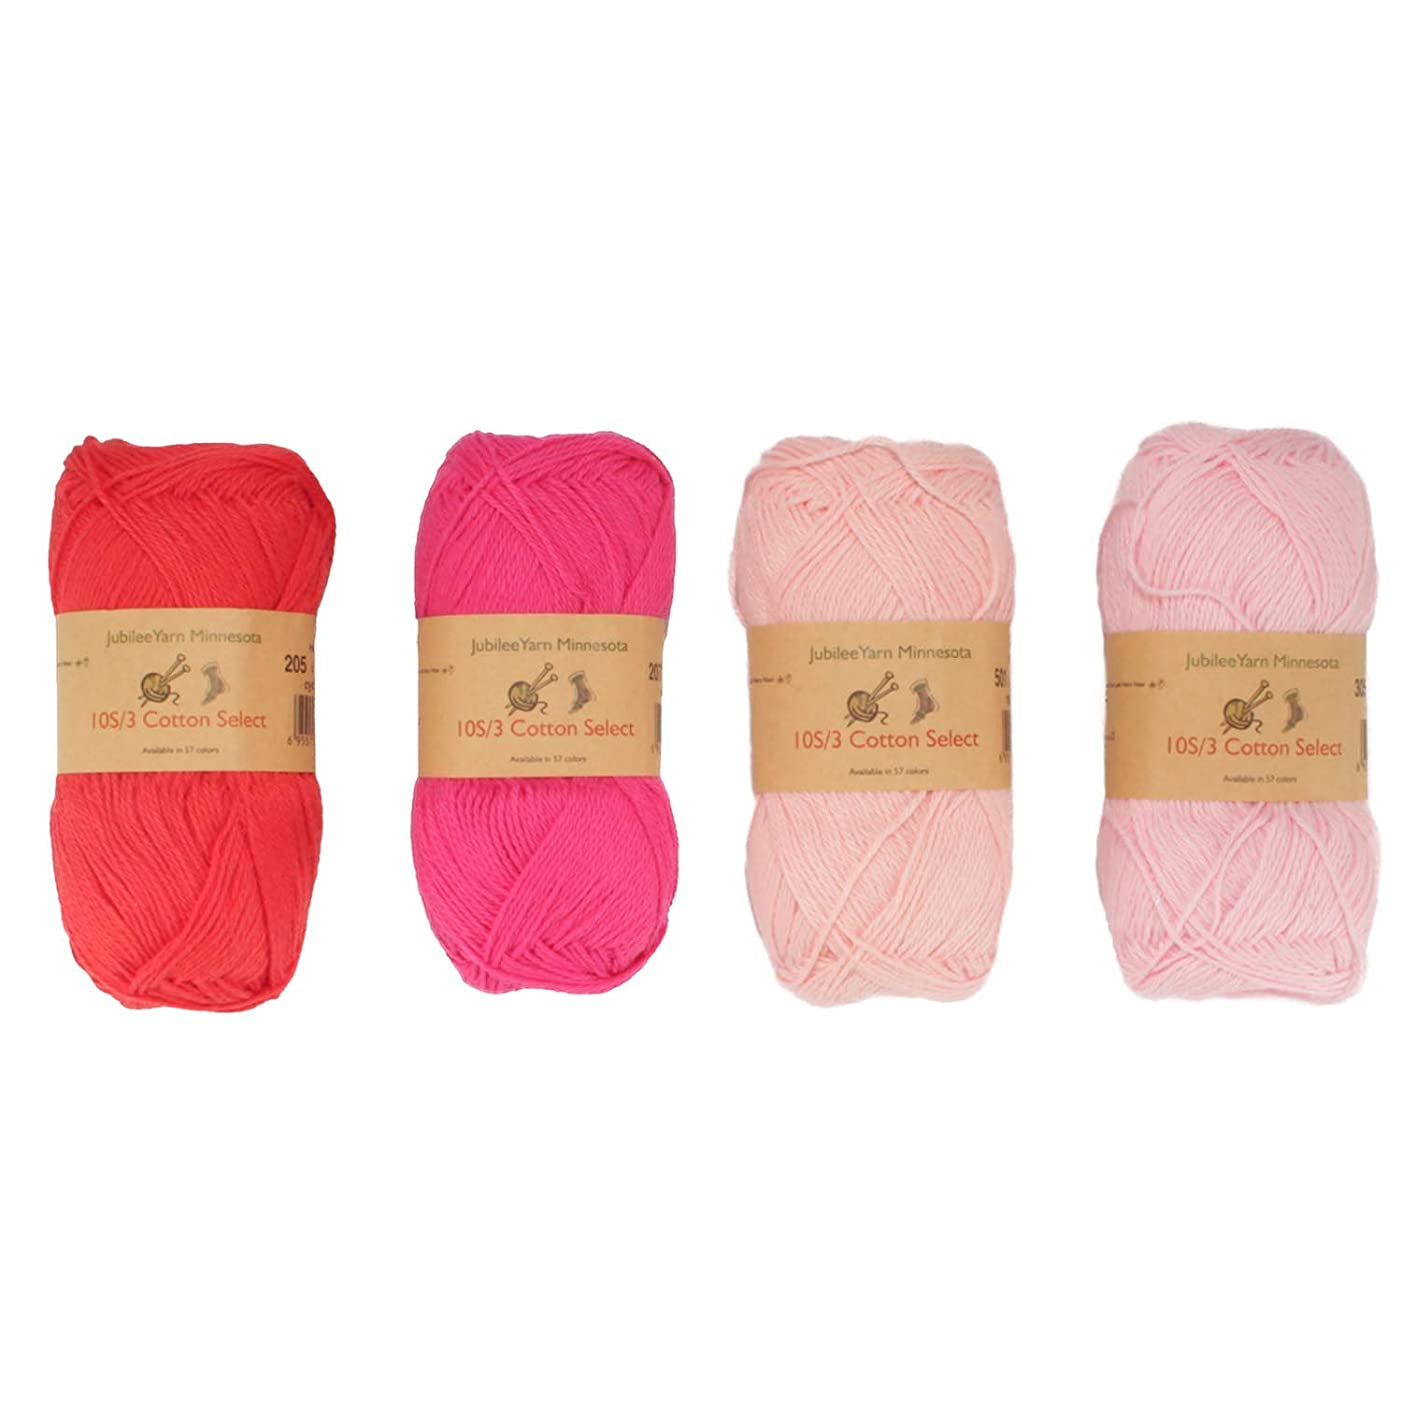 Cotton Select Sport Weight Yarn Color Palette Pack - 100% Fine Cotton - Shades of Pink - 4 Skeins